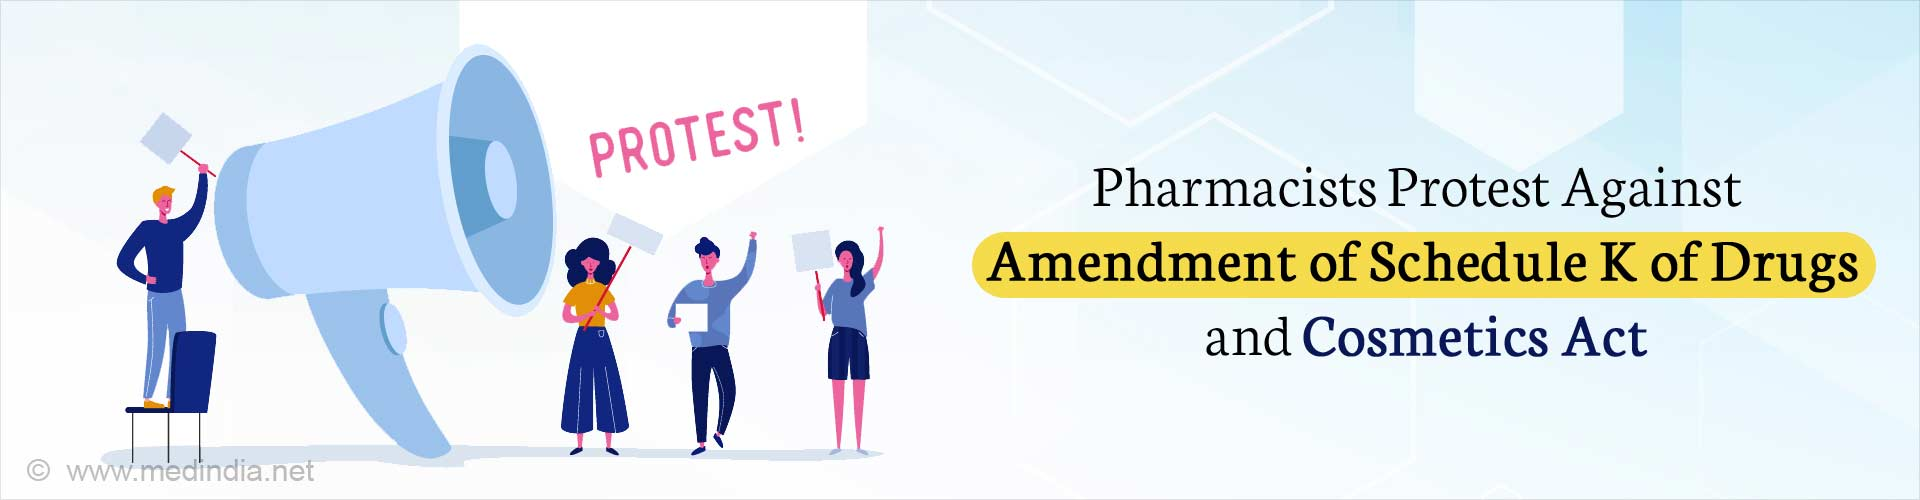 Amendment in the Schedule K Drugs Allows Health Workers to Dispense Drugs